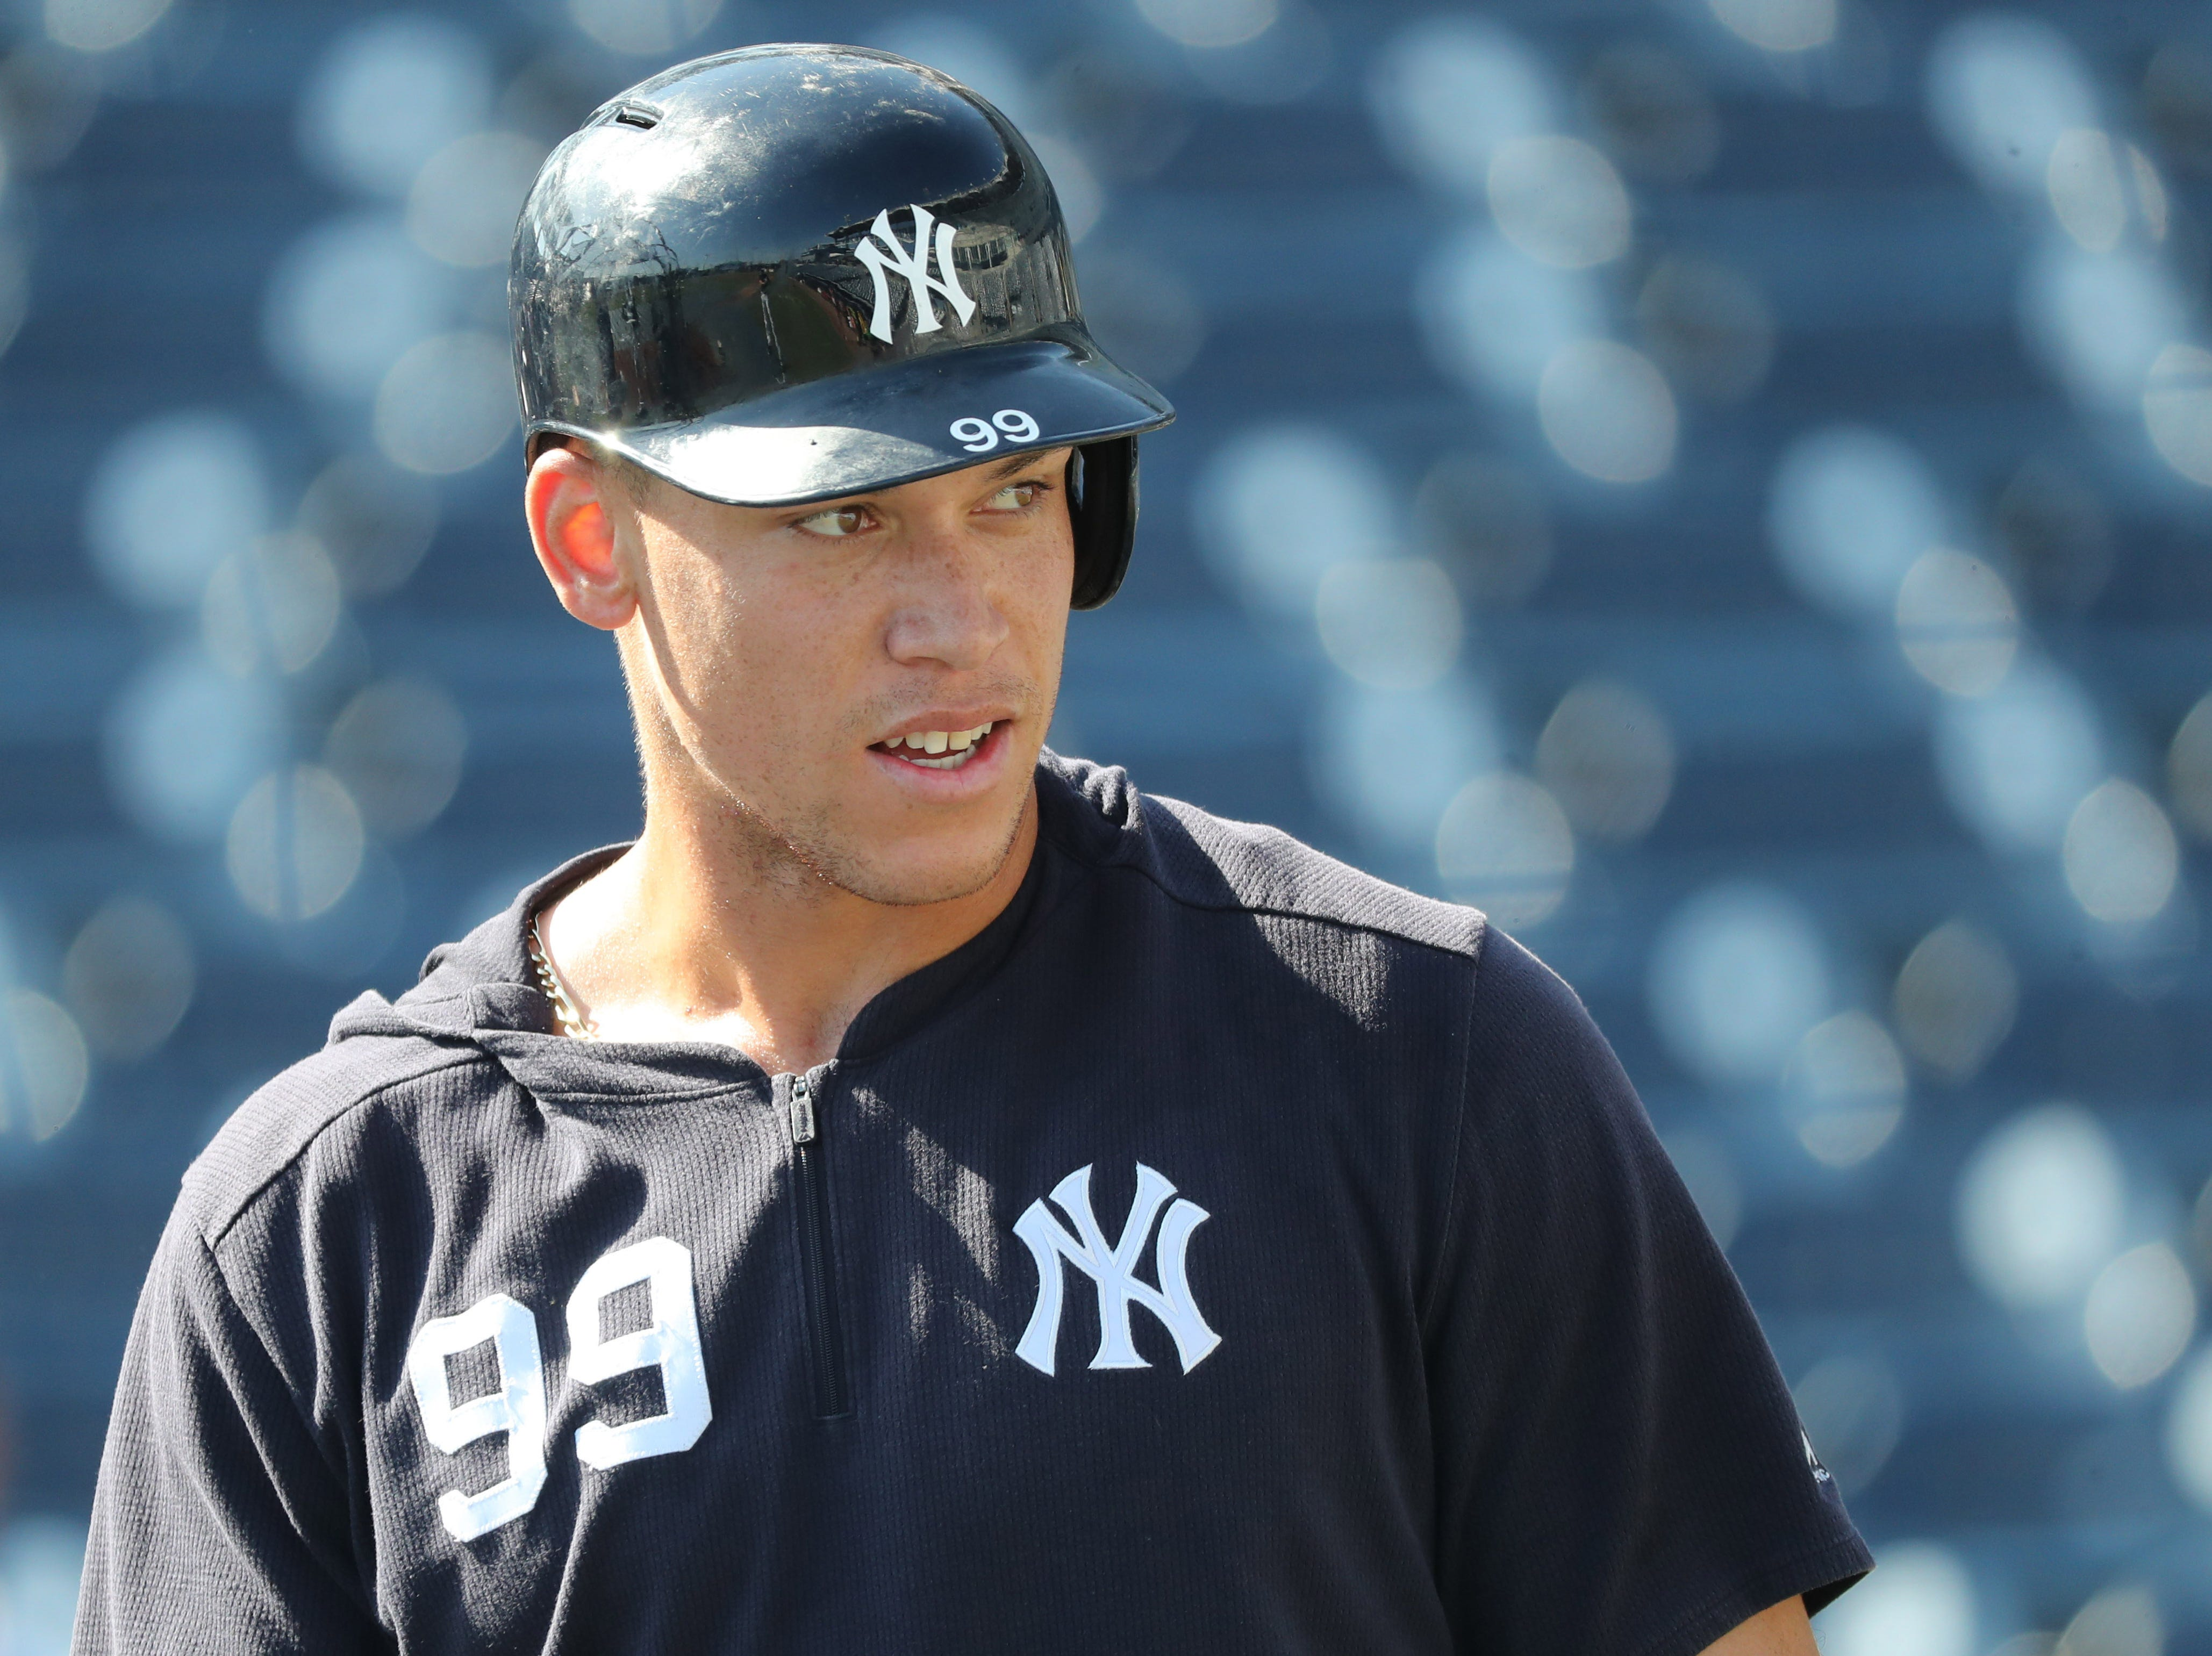 Pondering Aaron Judge's future with Yankees after Mike Trout's record contract